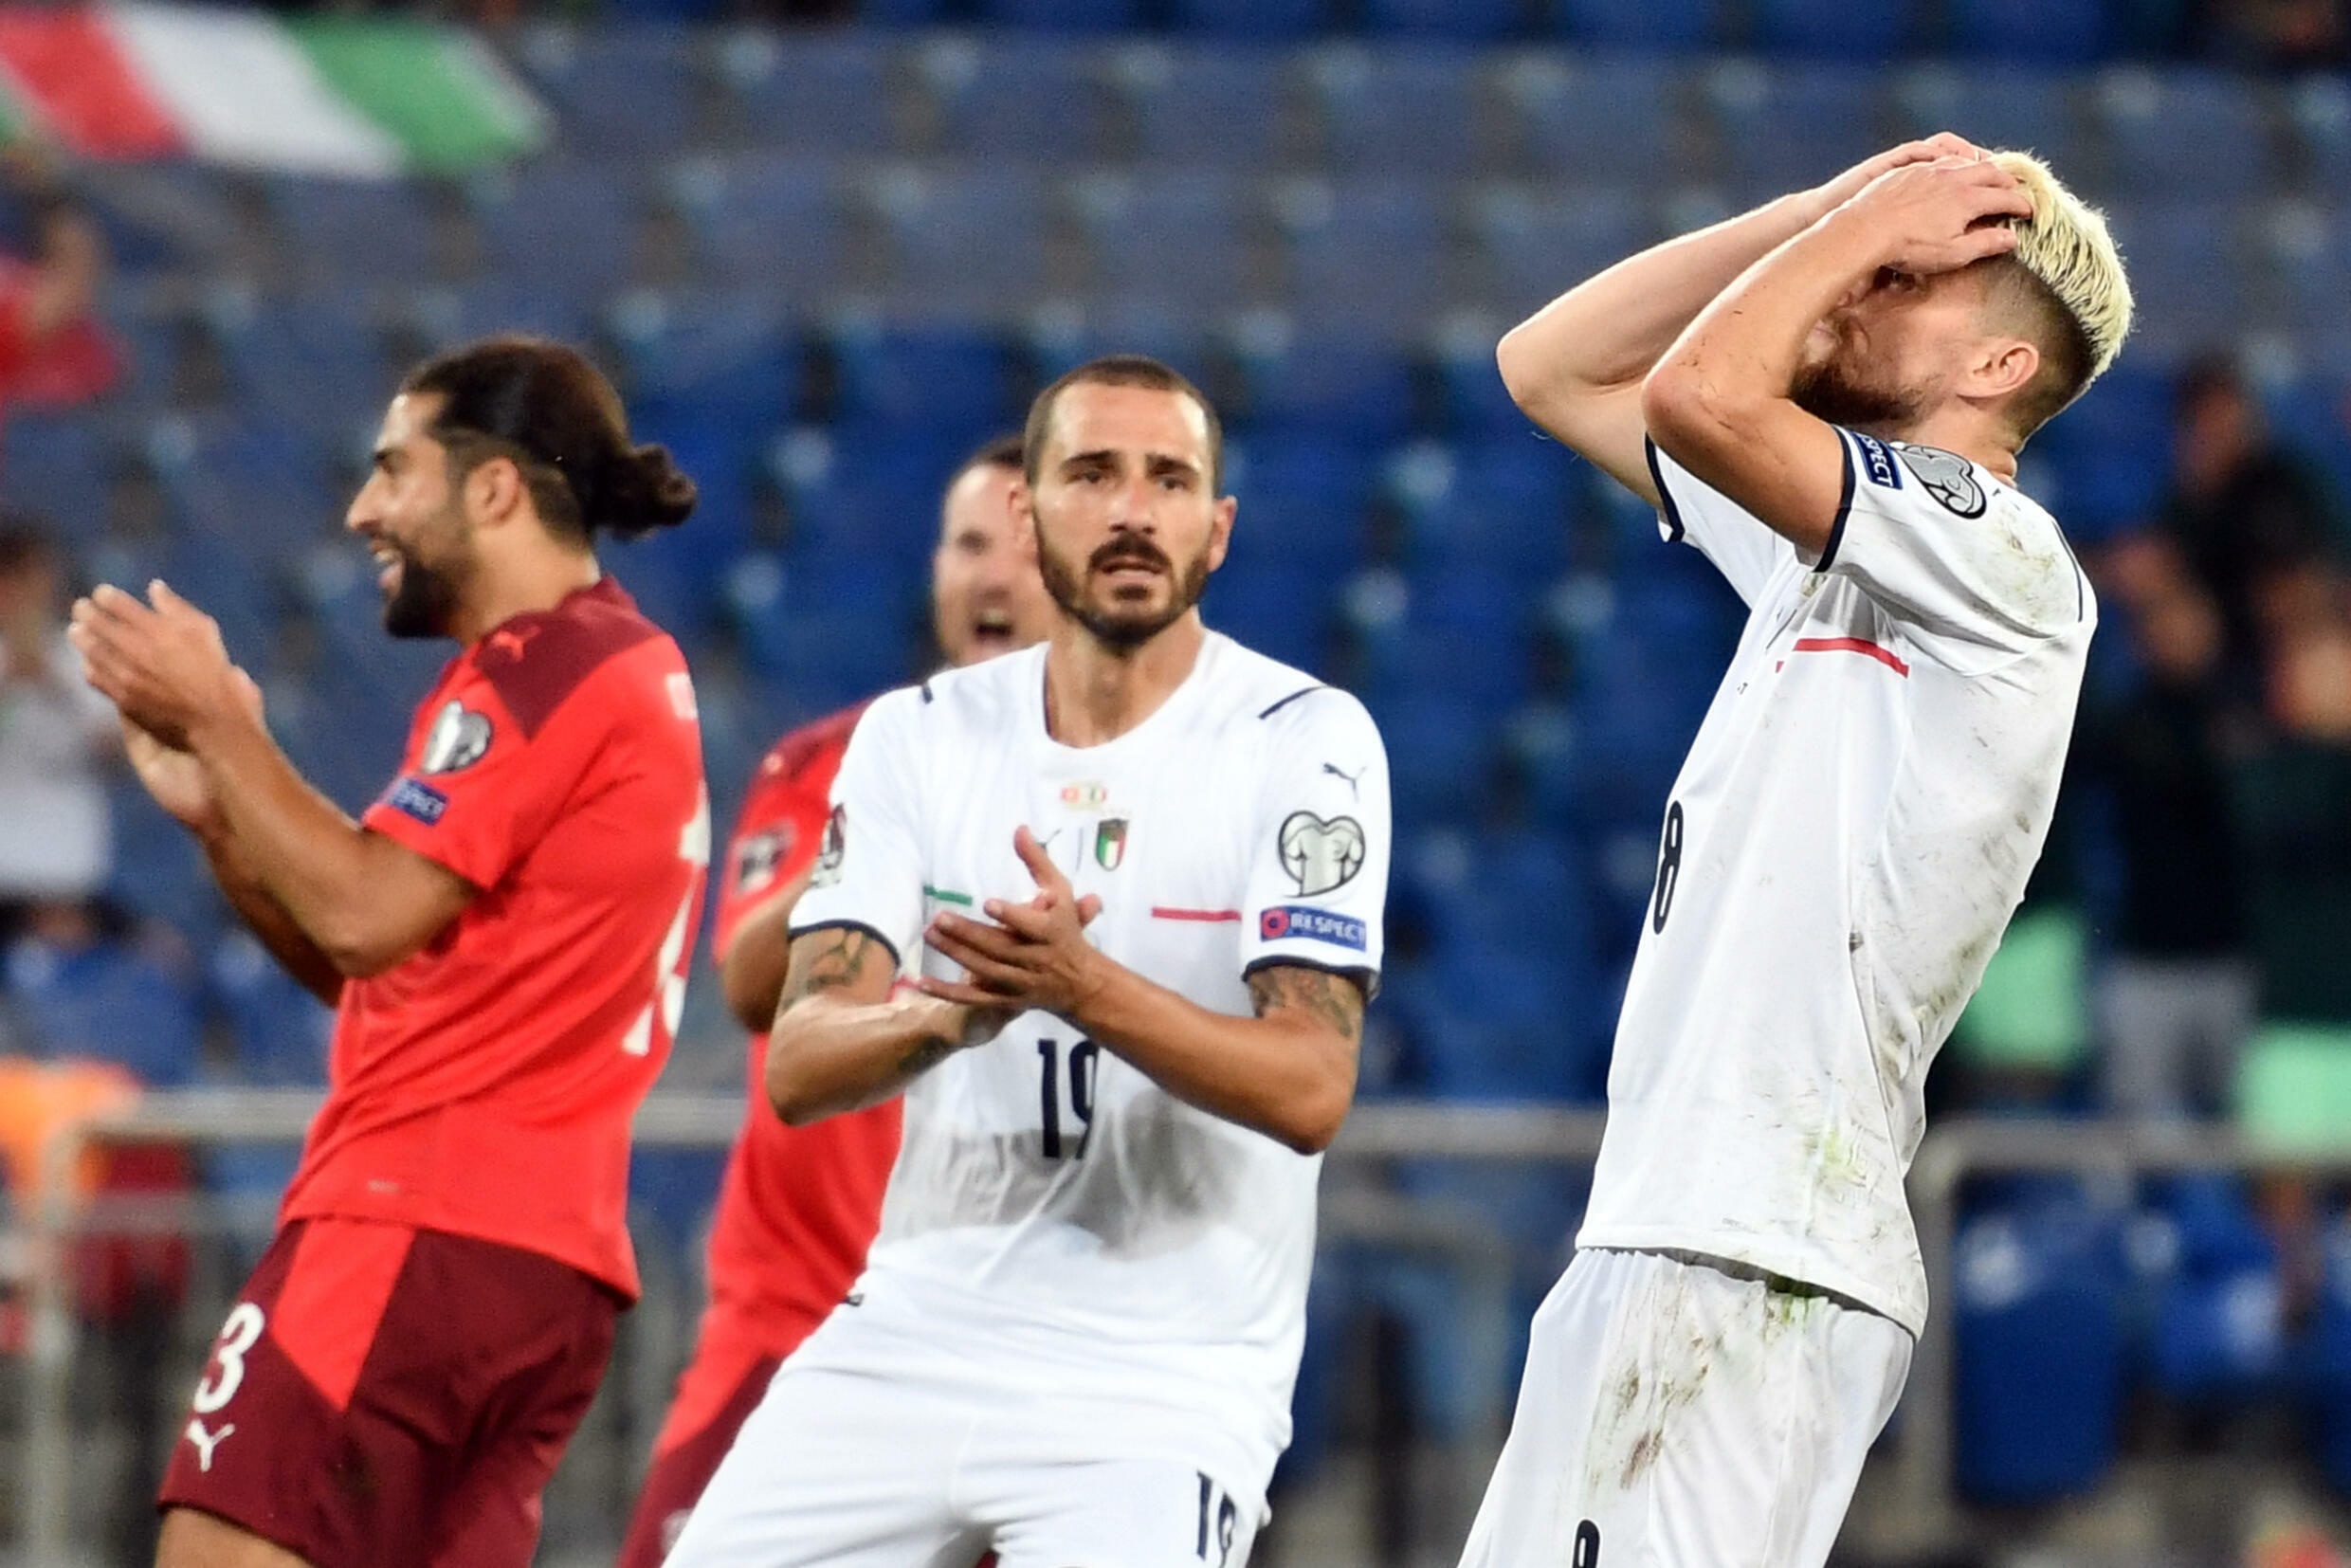 Jorginho (R) missed a penalty but Italy set a new record for longest unbeaten run